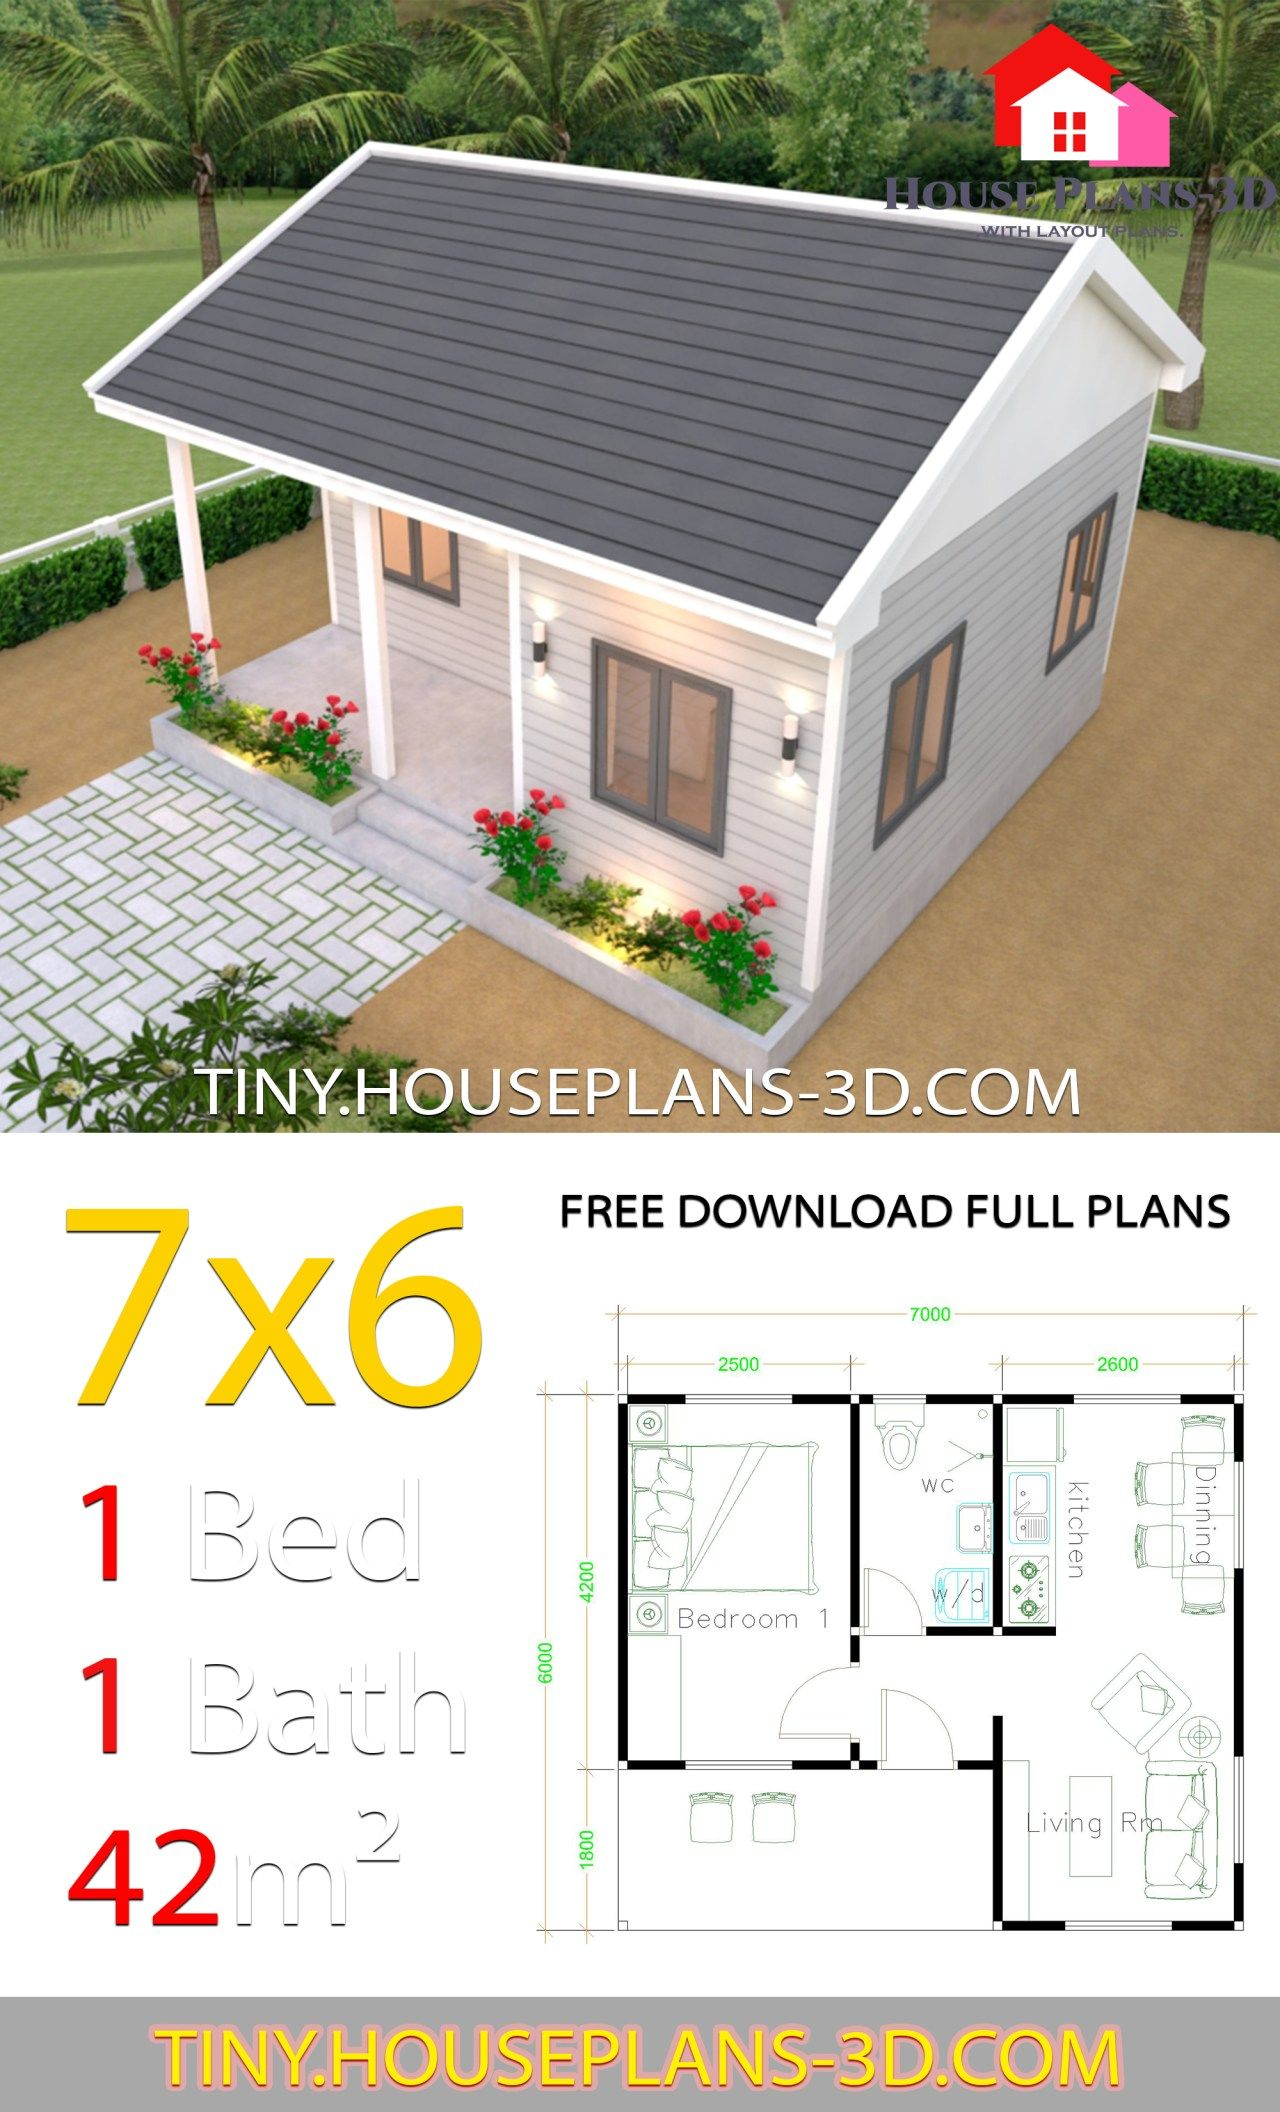 Tiny House Plans 7x6 With One Bedroom Gable Roof Tiny House Plans Tiny House Plans Micro House Plans How To Plan